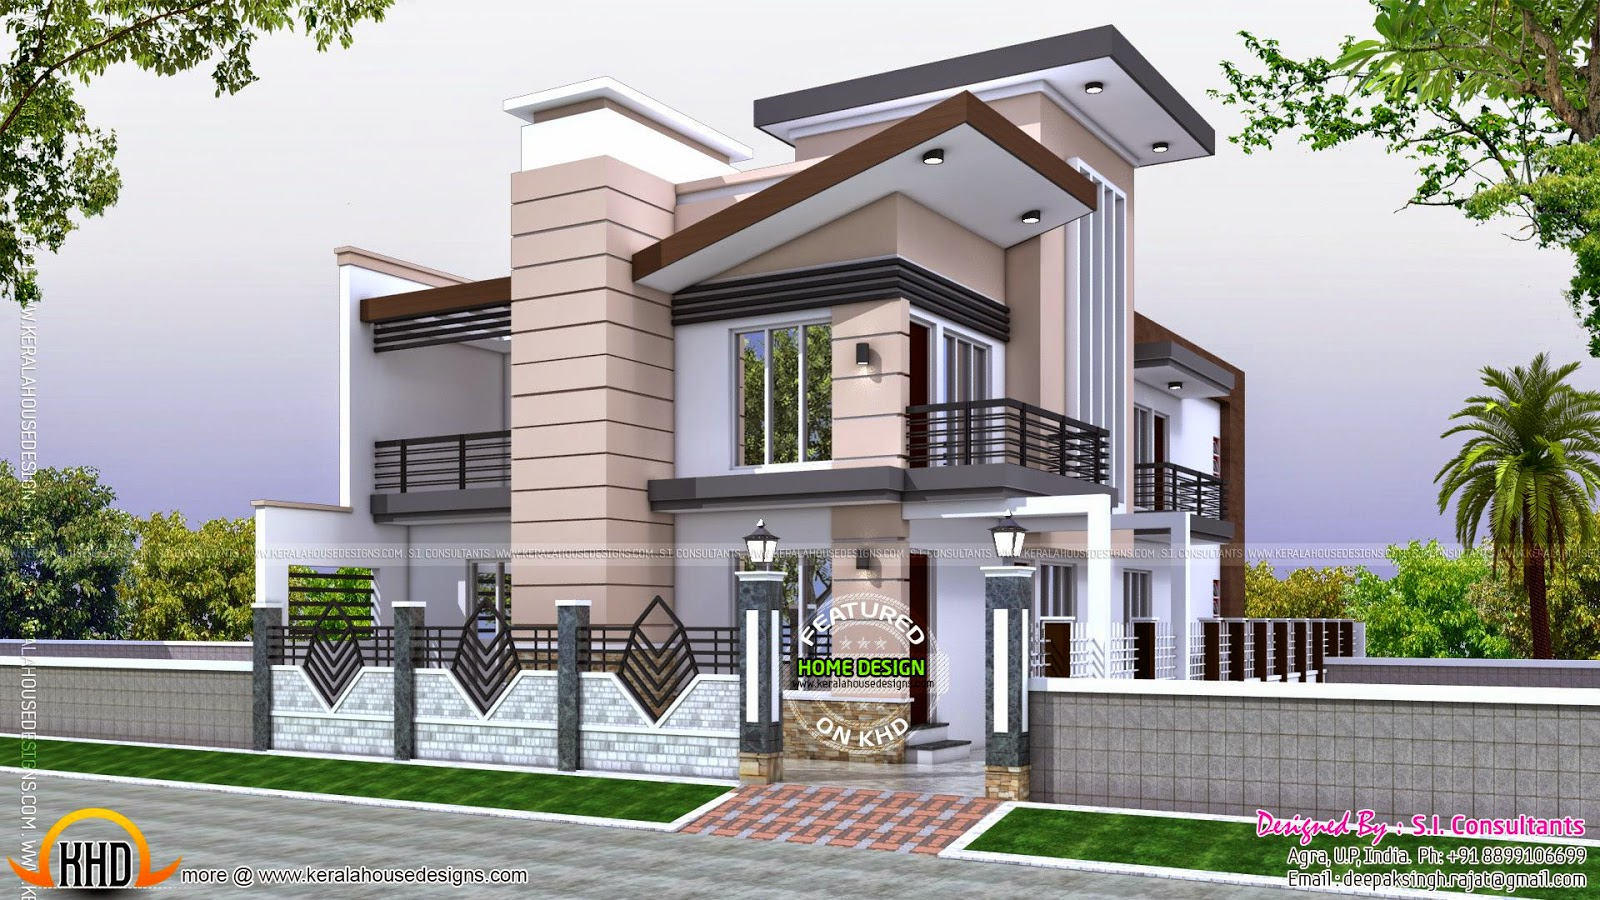 Indian home modern style kerala home design and floor plans for Building plans for homes in india